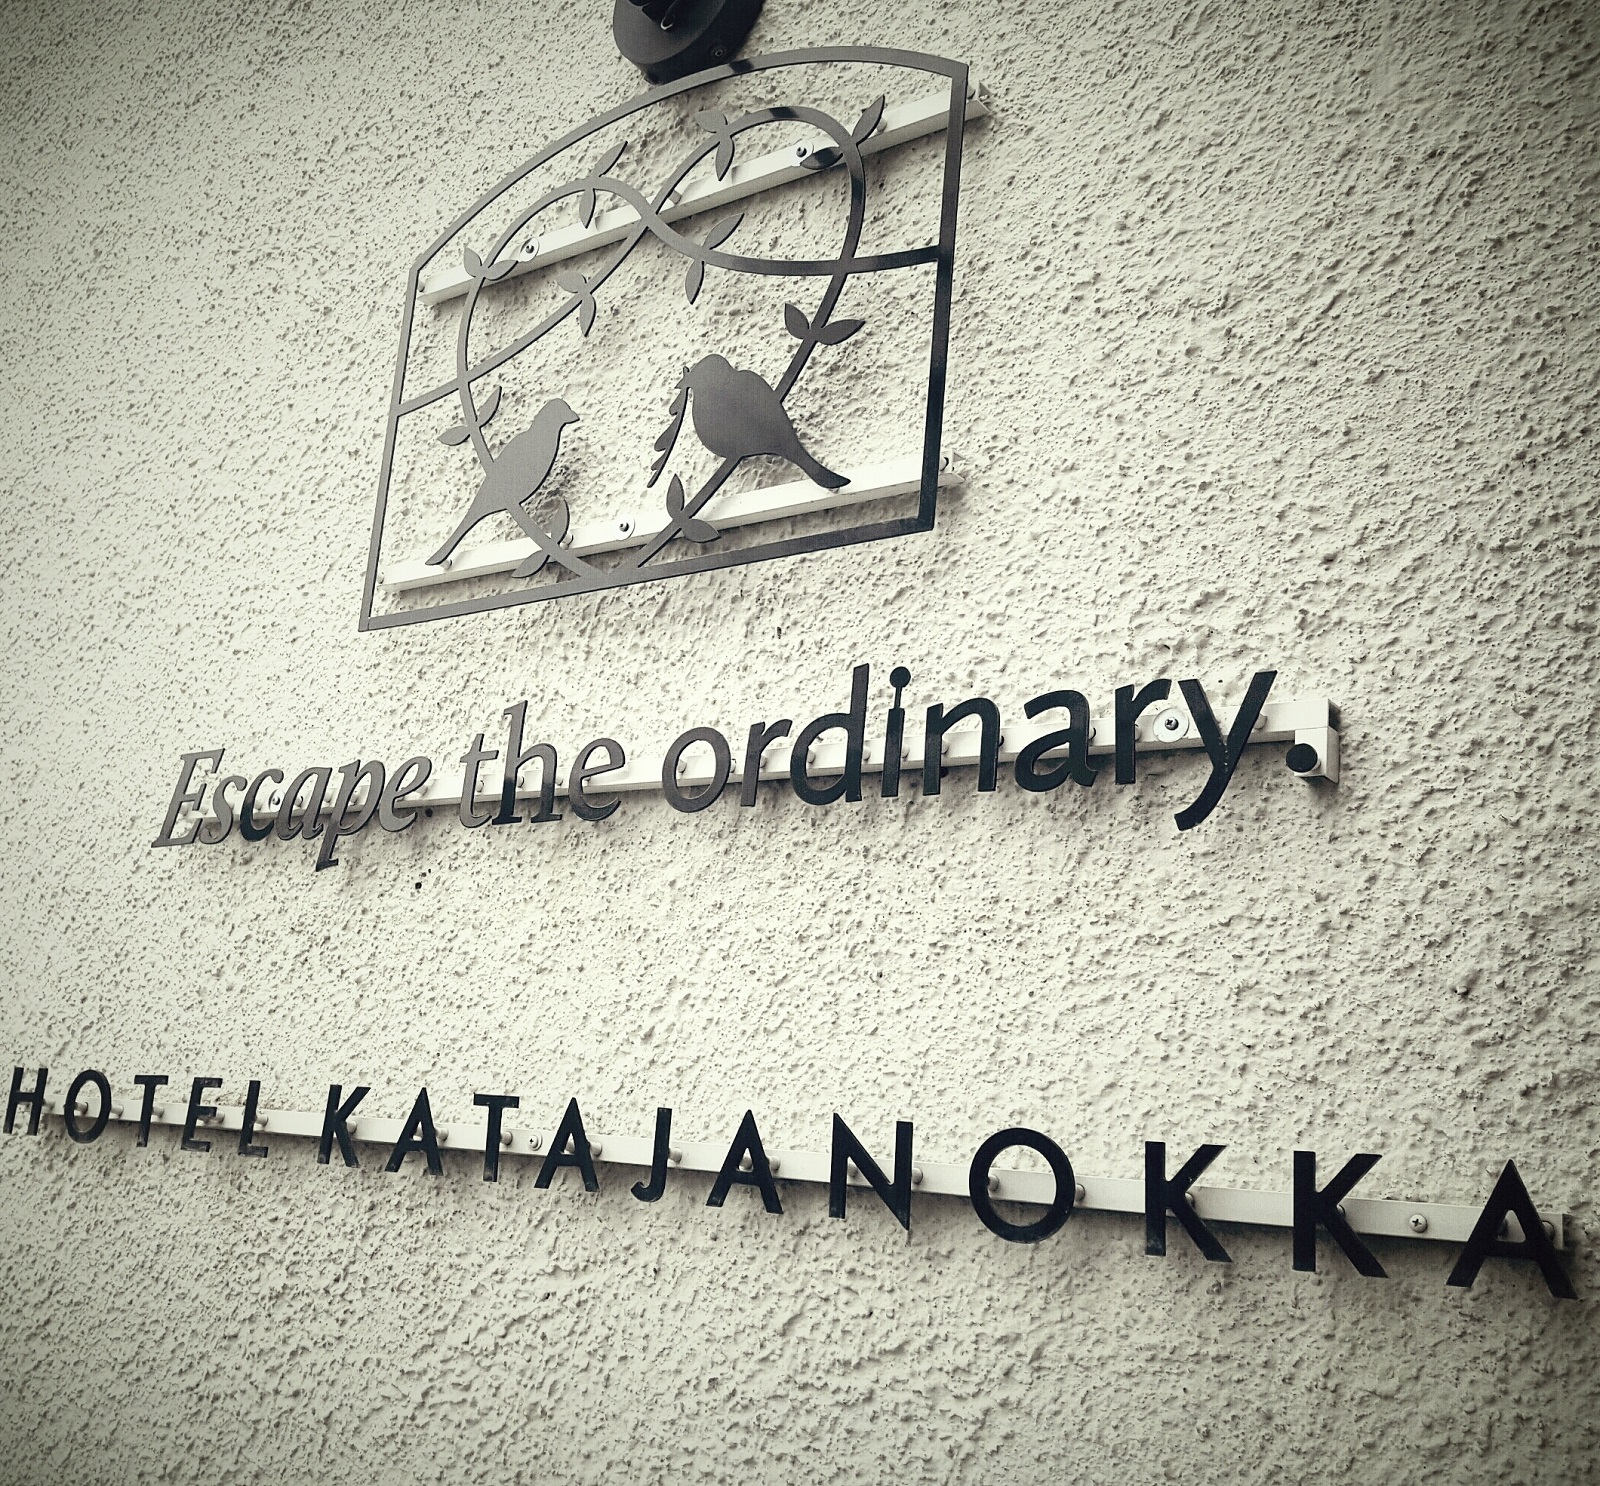 Hotel Katajanokka - escape the ordinary